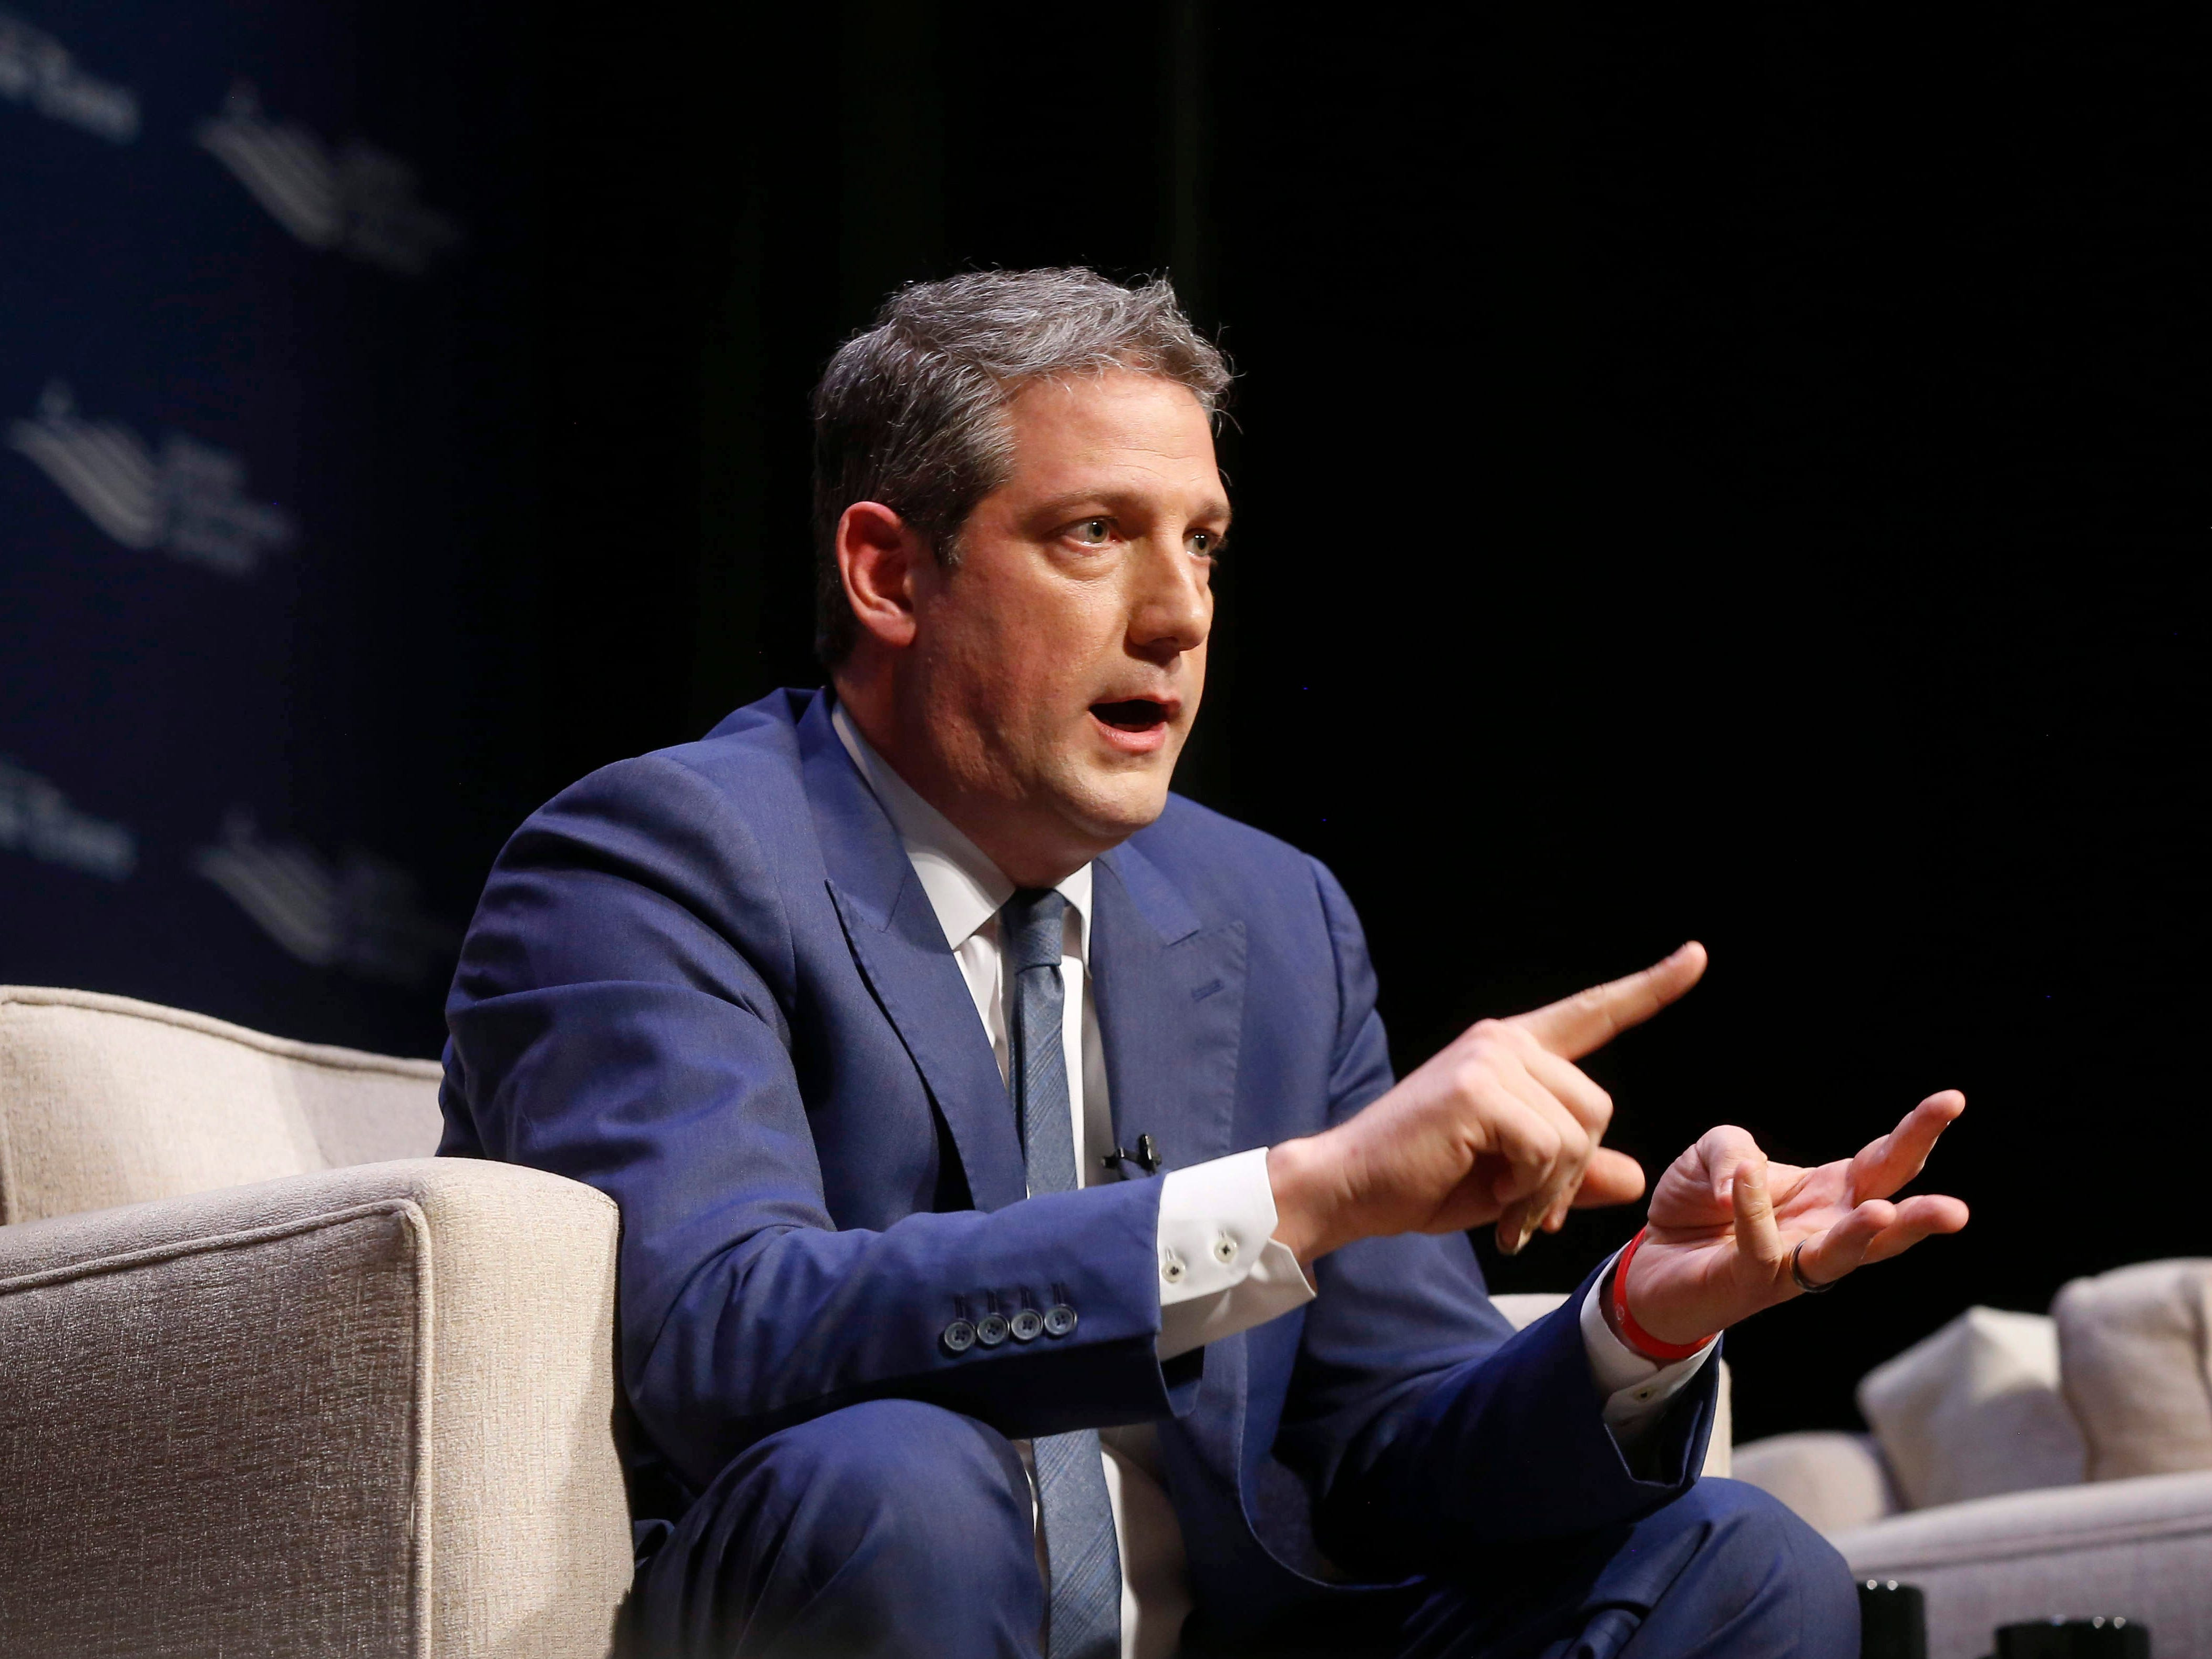 U.S. Representative Tim Ryan (D-Ohio) speaks during the Storm Lake Times political forum in Storm Lake on March 30, 2019.